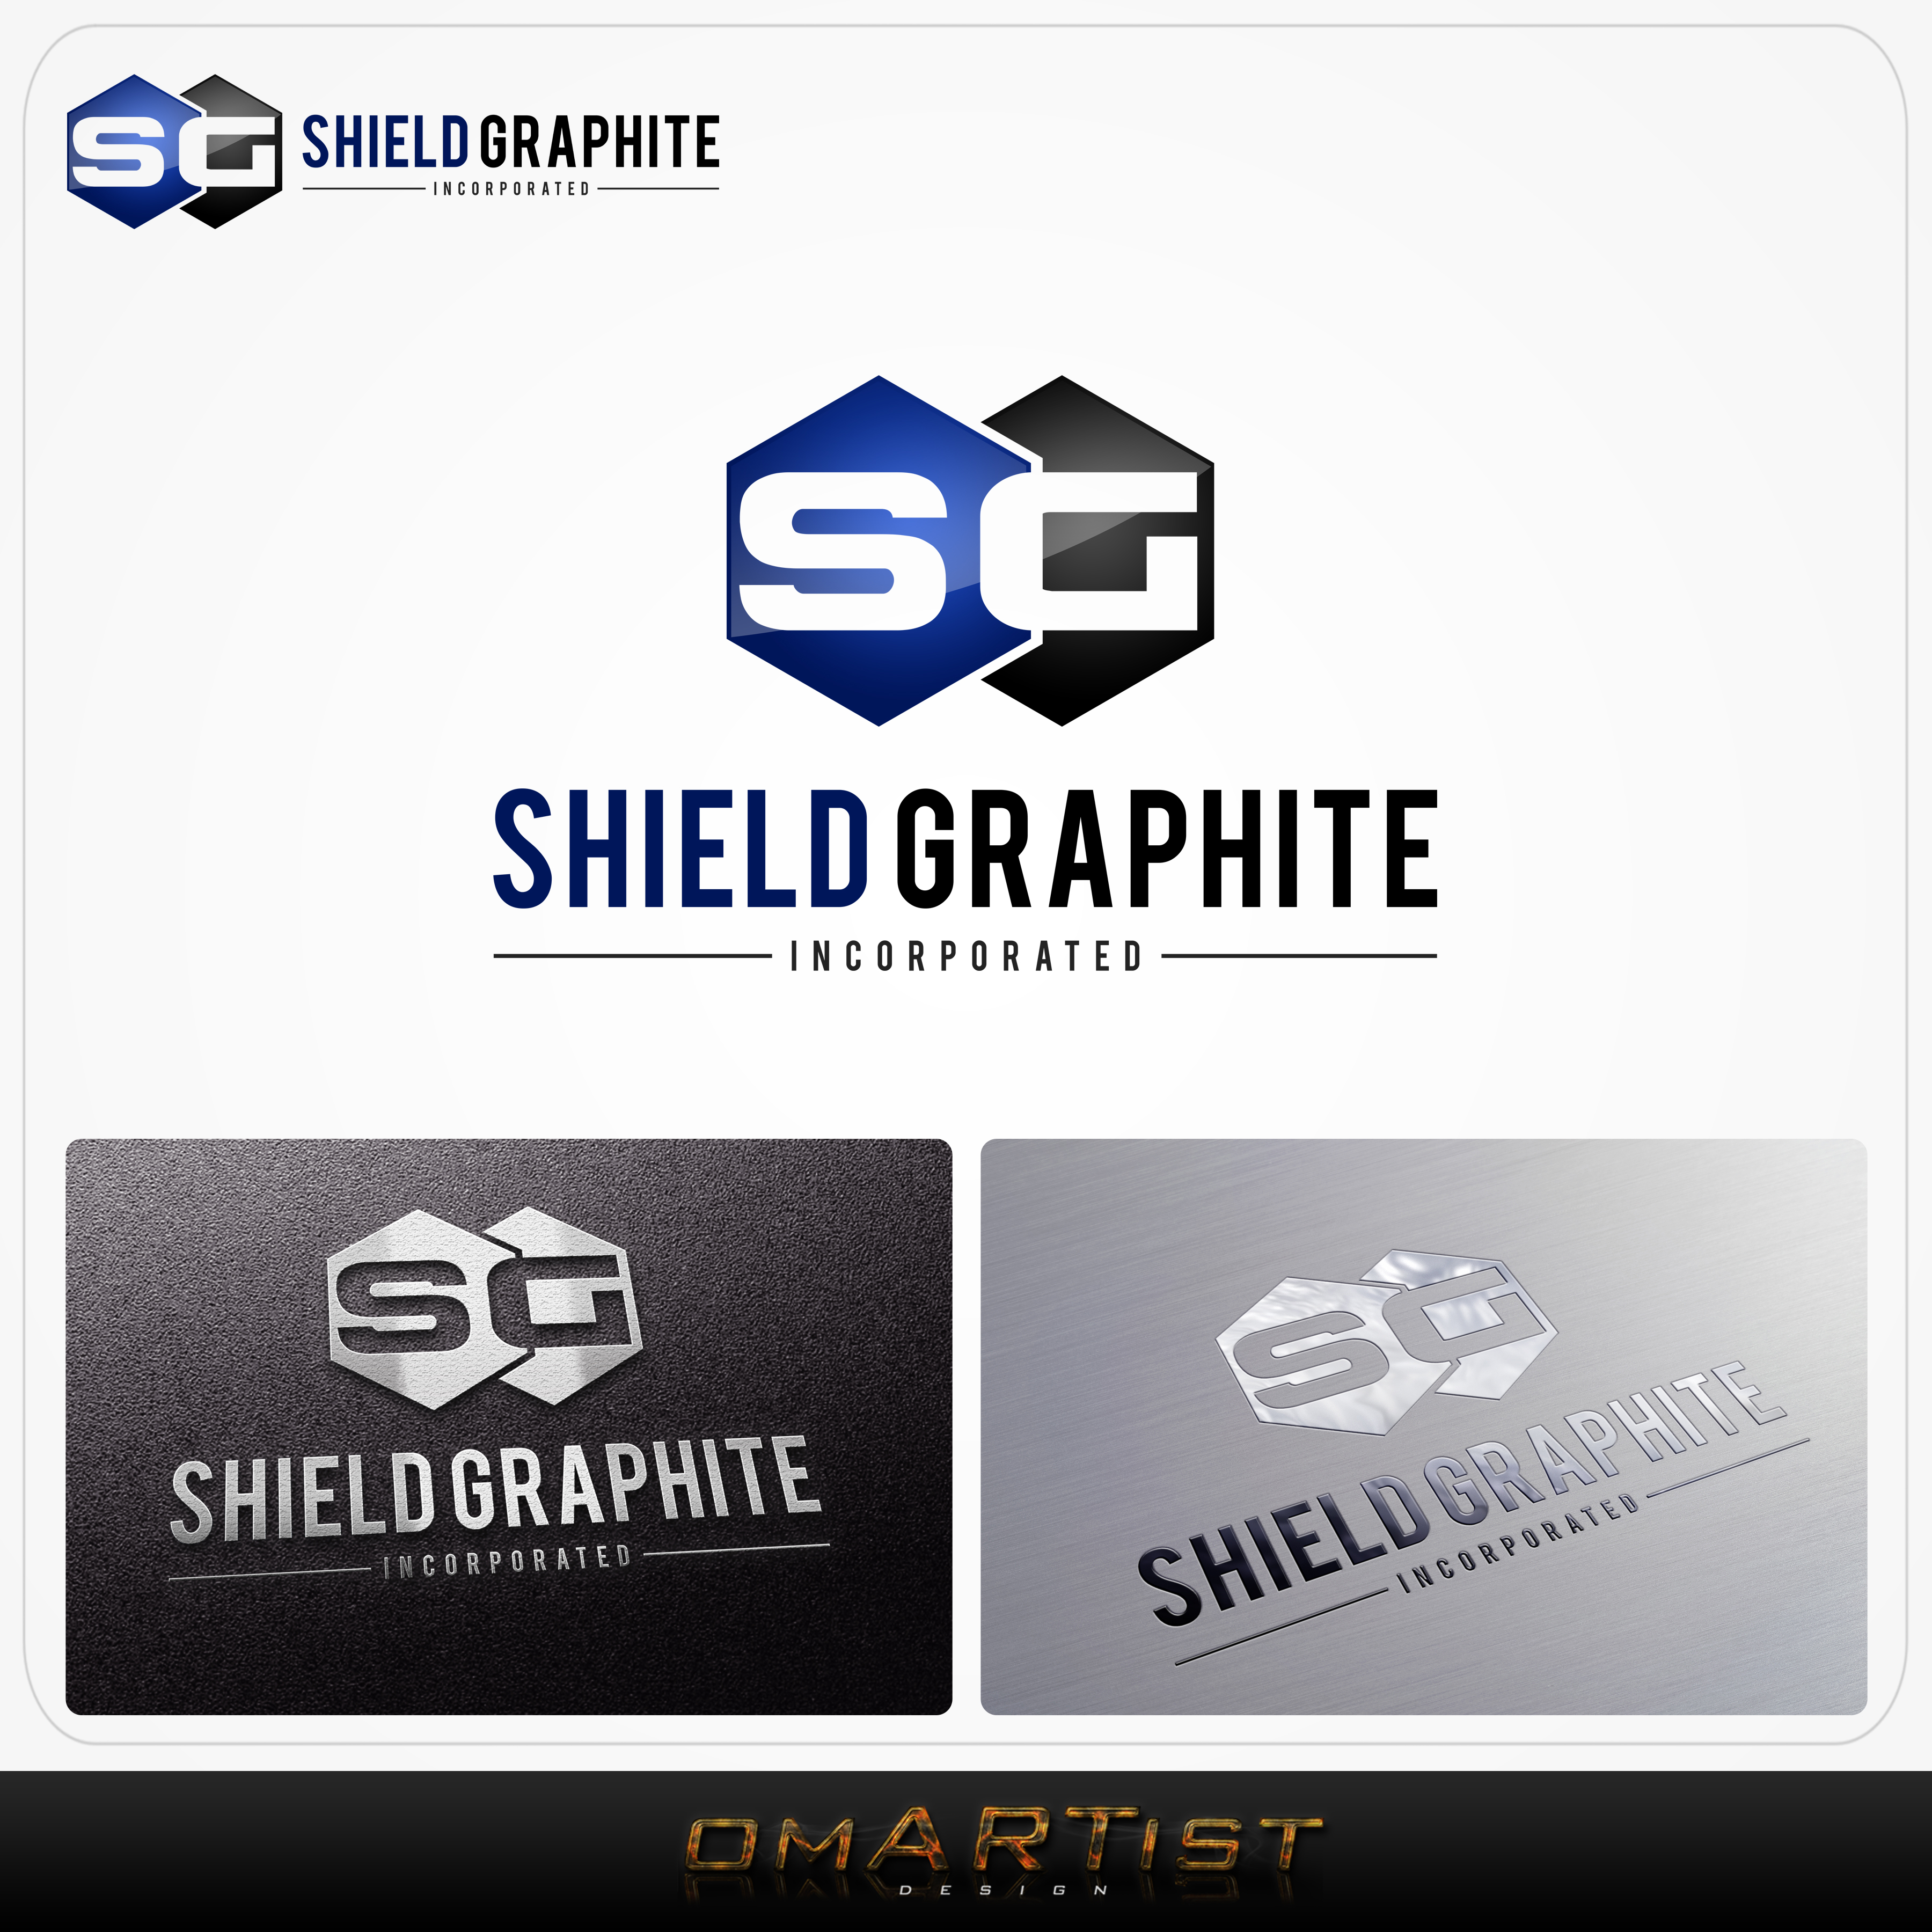 Logo Design by omARTist - Entry No. 140 in the Logo Design Contest Imaginative Logo Design for Shield Graphite Inc..